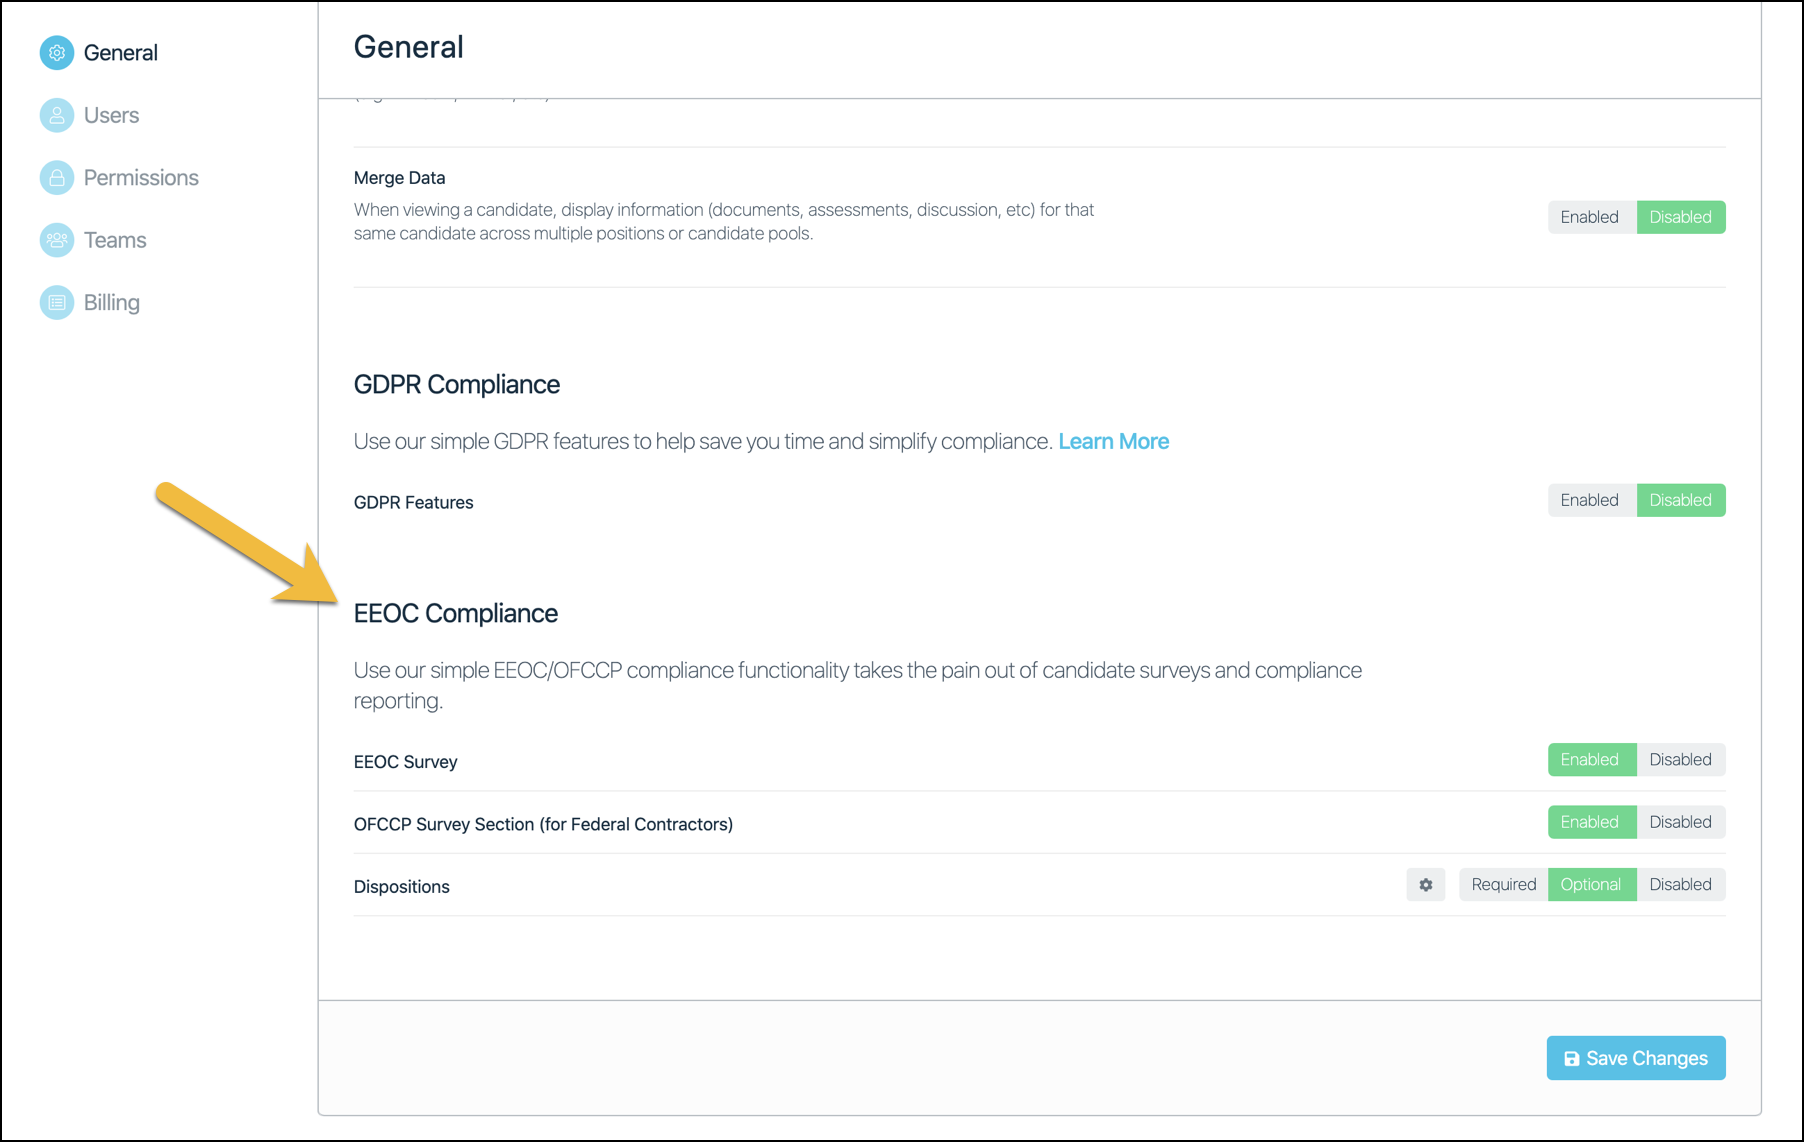 Enabling compliance features in Company Settings